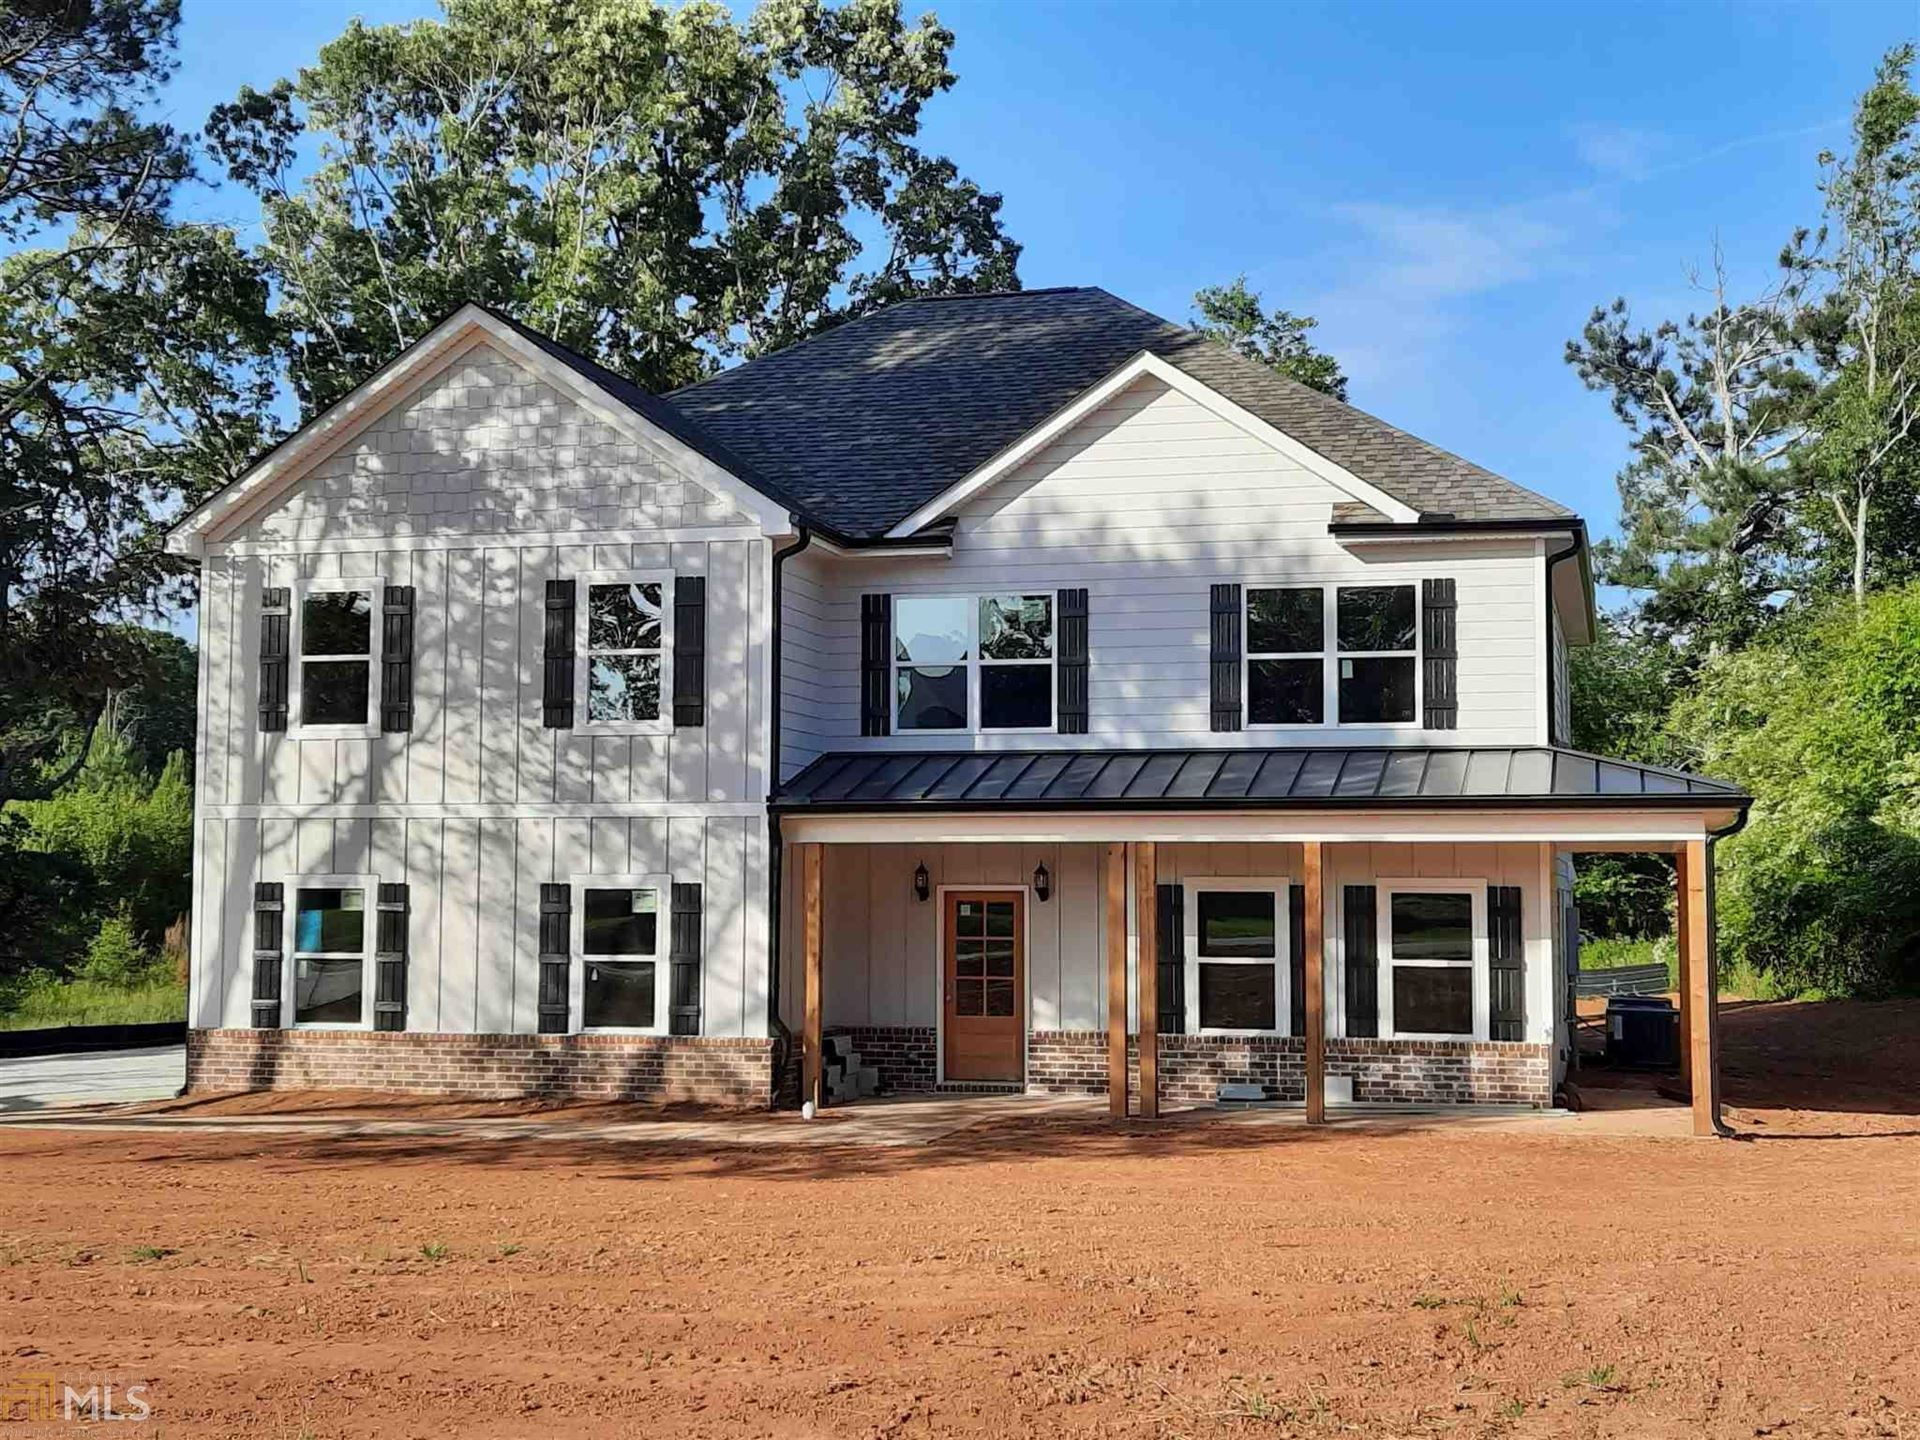 5065 Willie Robinson Rd, Gainesville, GA 30506 - MLS#: 8835527